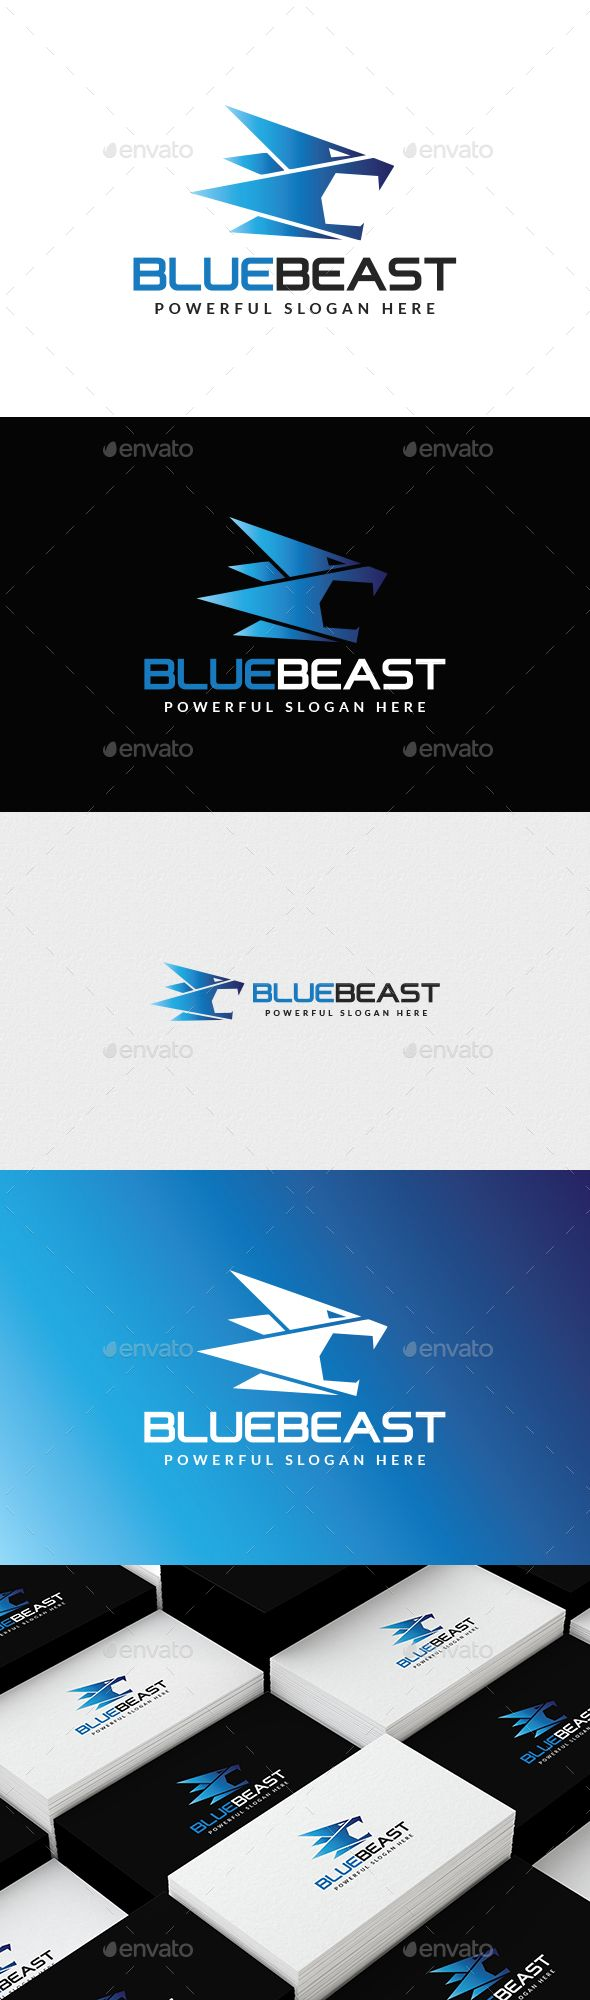 Beast Logo Template by mahamudulh LOGO SPECIFICATIONS100 Vector Logo100 Editable and ScalableWeb & Print ReadyLayered by NameCMYK Colors, 300 dpiUsed Free Fonts (